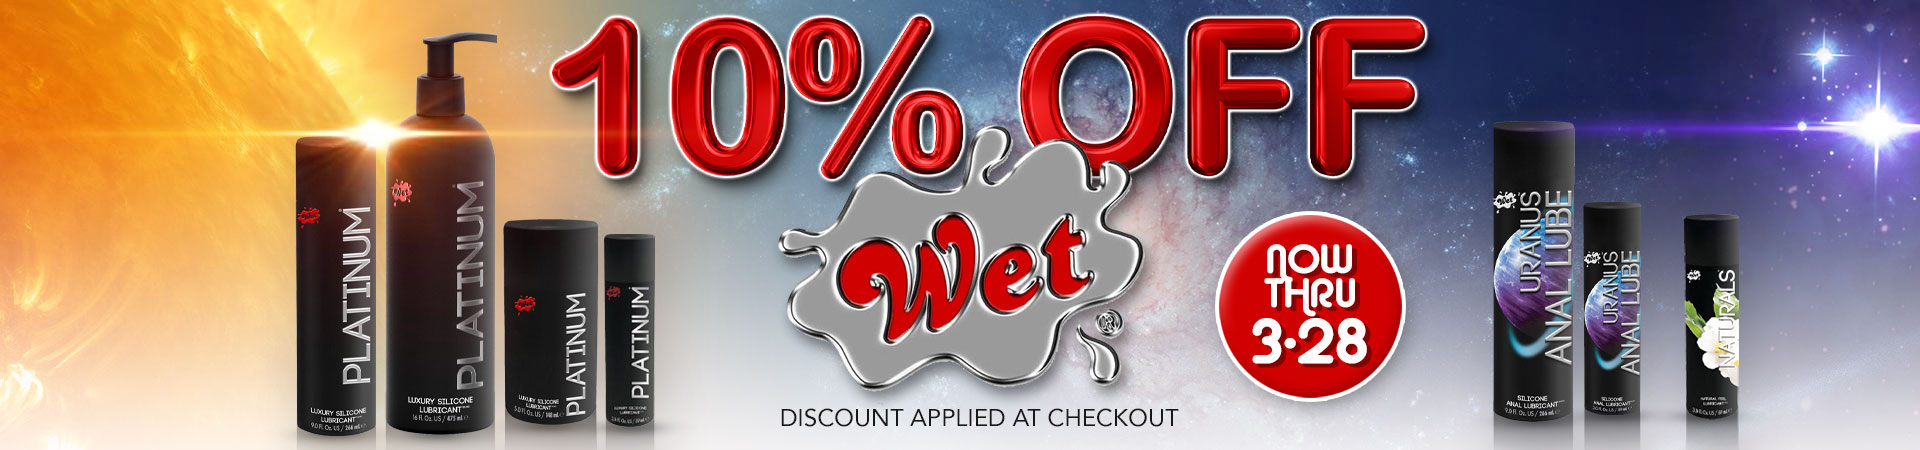 Save 10% On All Wet Luxury Lubricants - Now Thru March 28Th! Discount Applied At Checkout